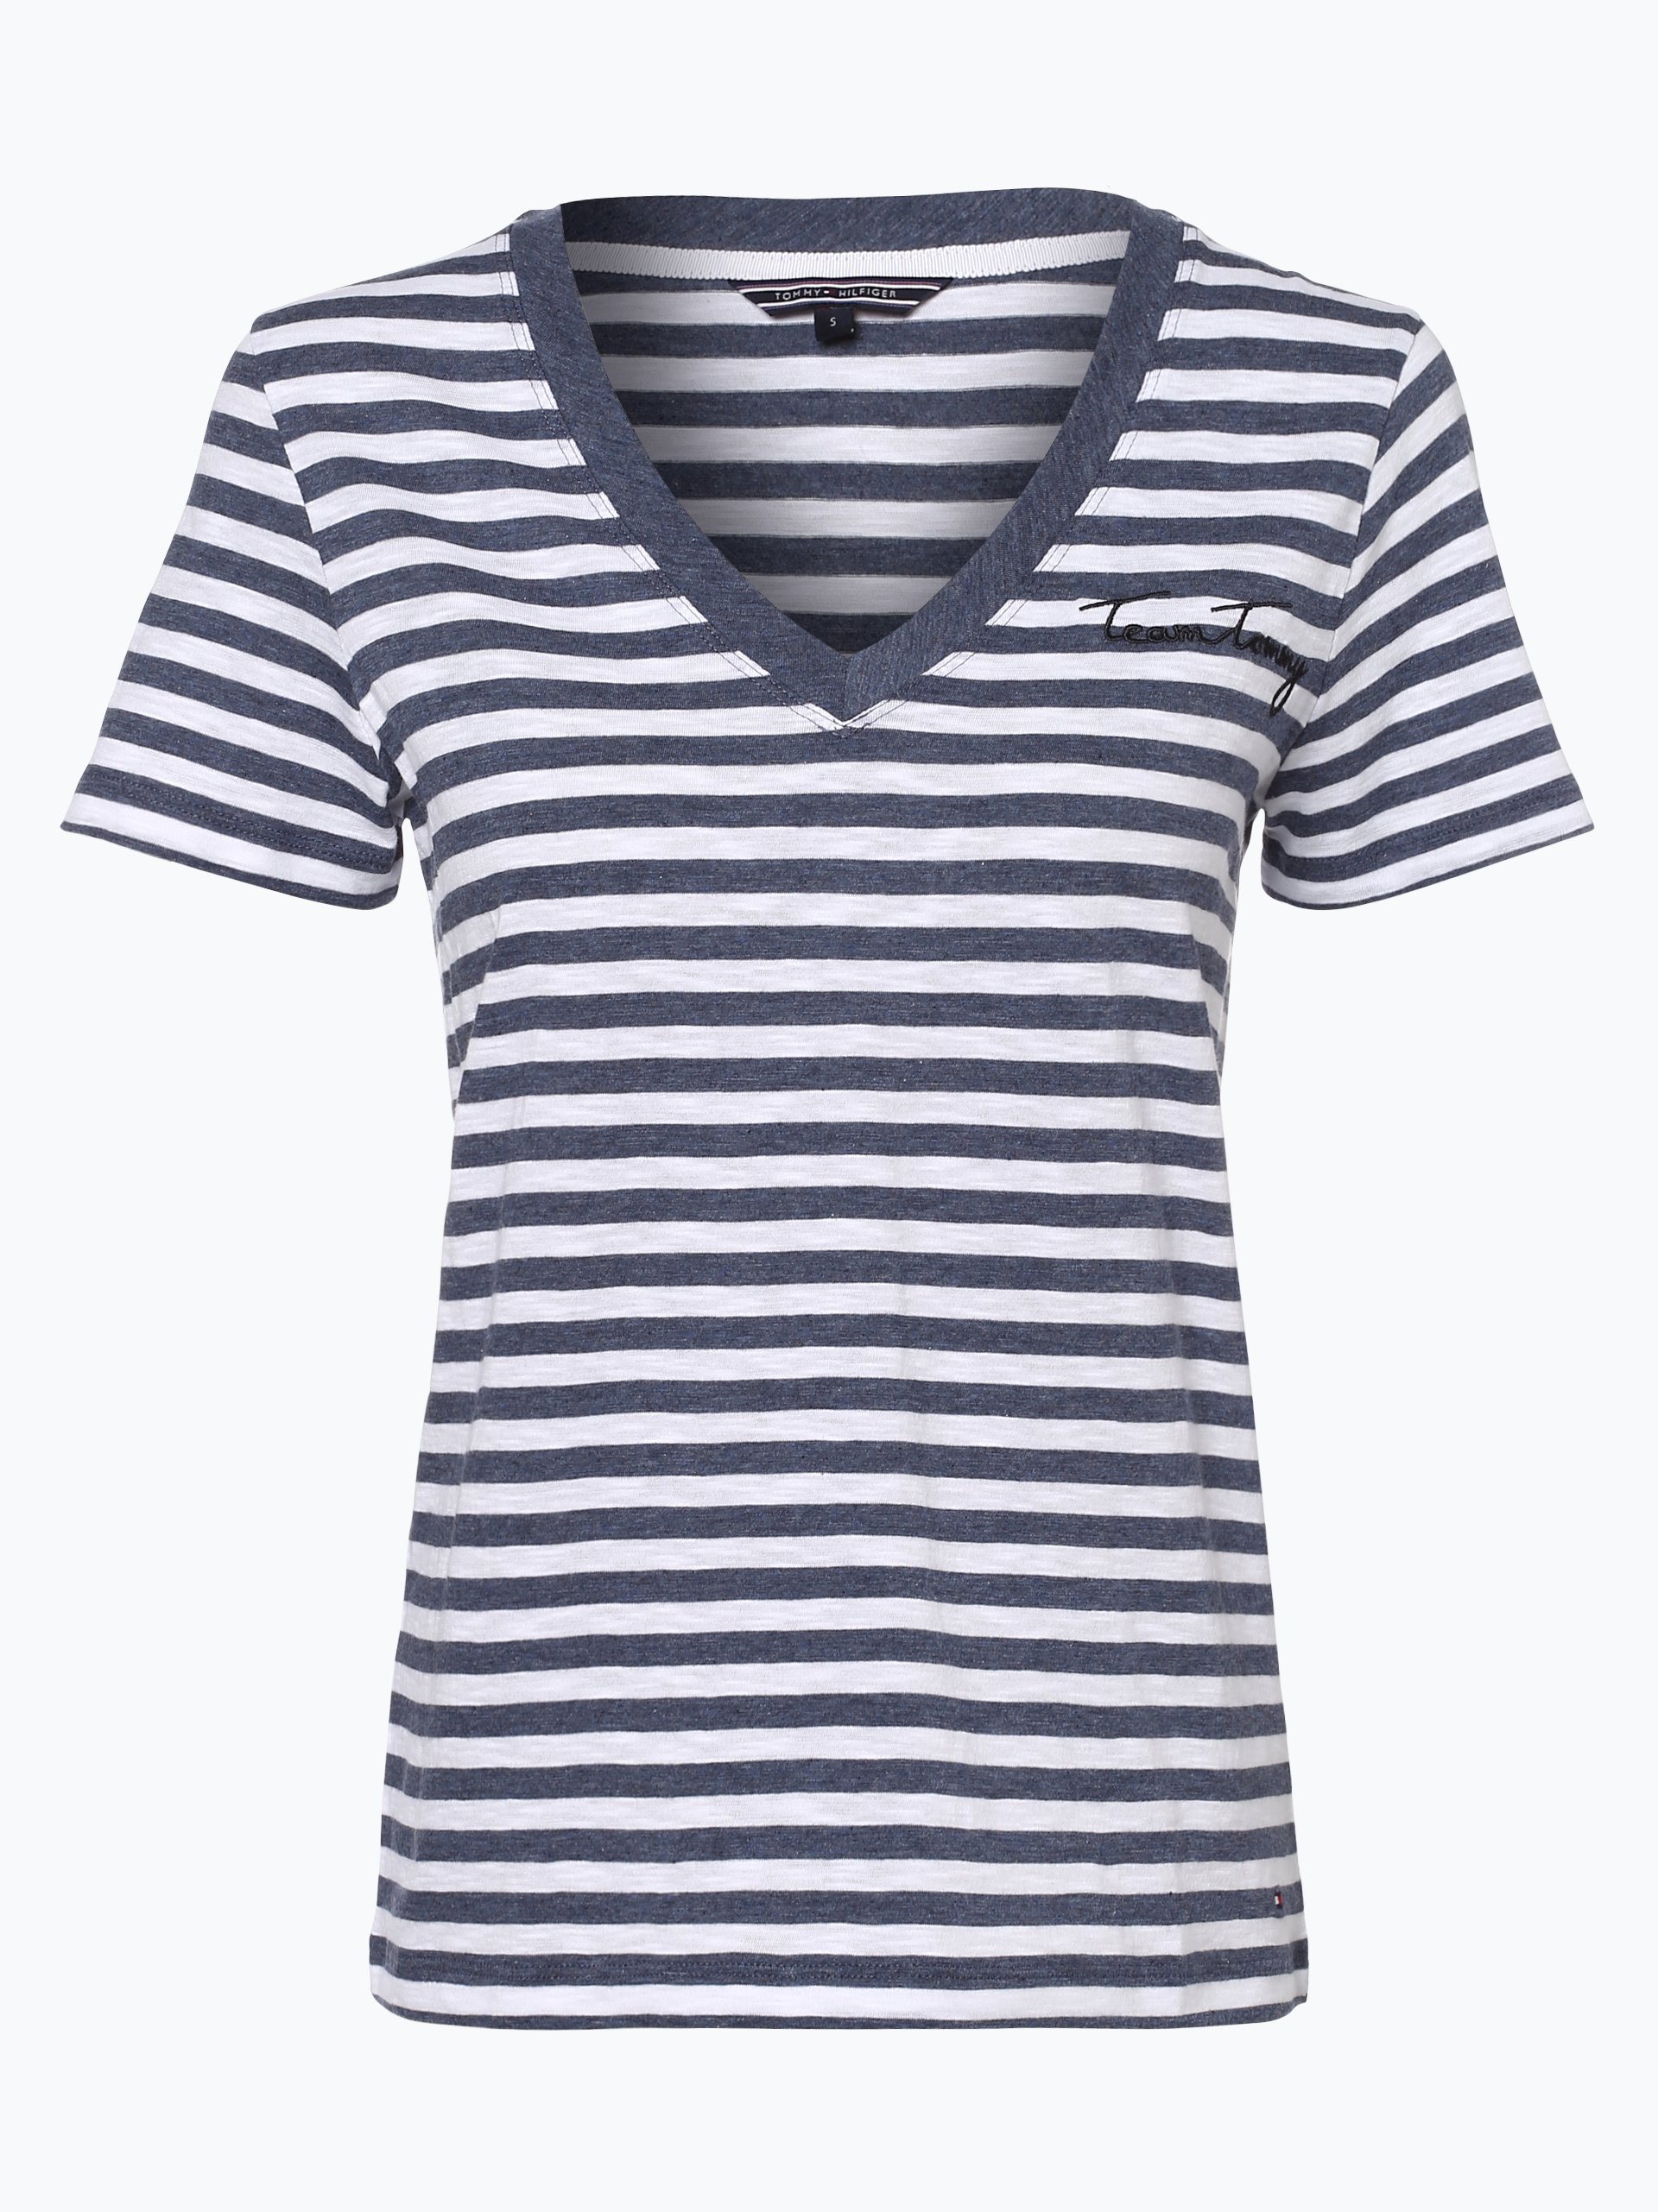 tommy hilfiger damen t shirt marine gestreift online. Black Bedroom Furniture Sets. Home Design Ideas